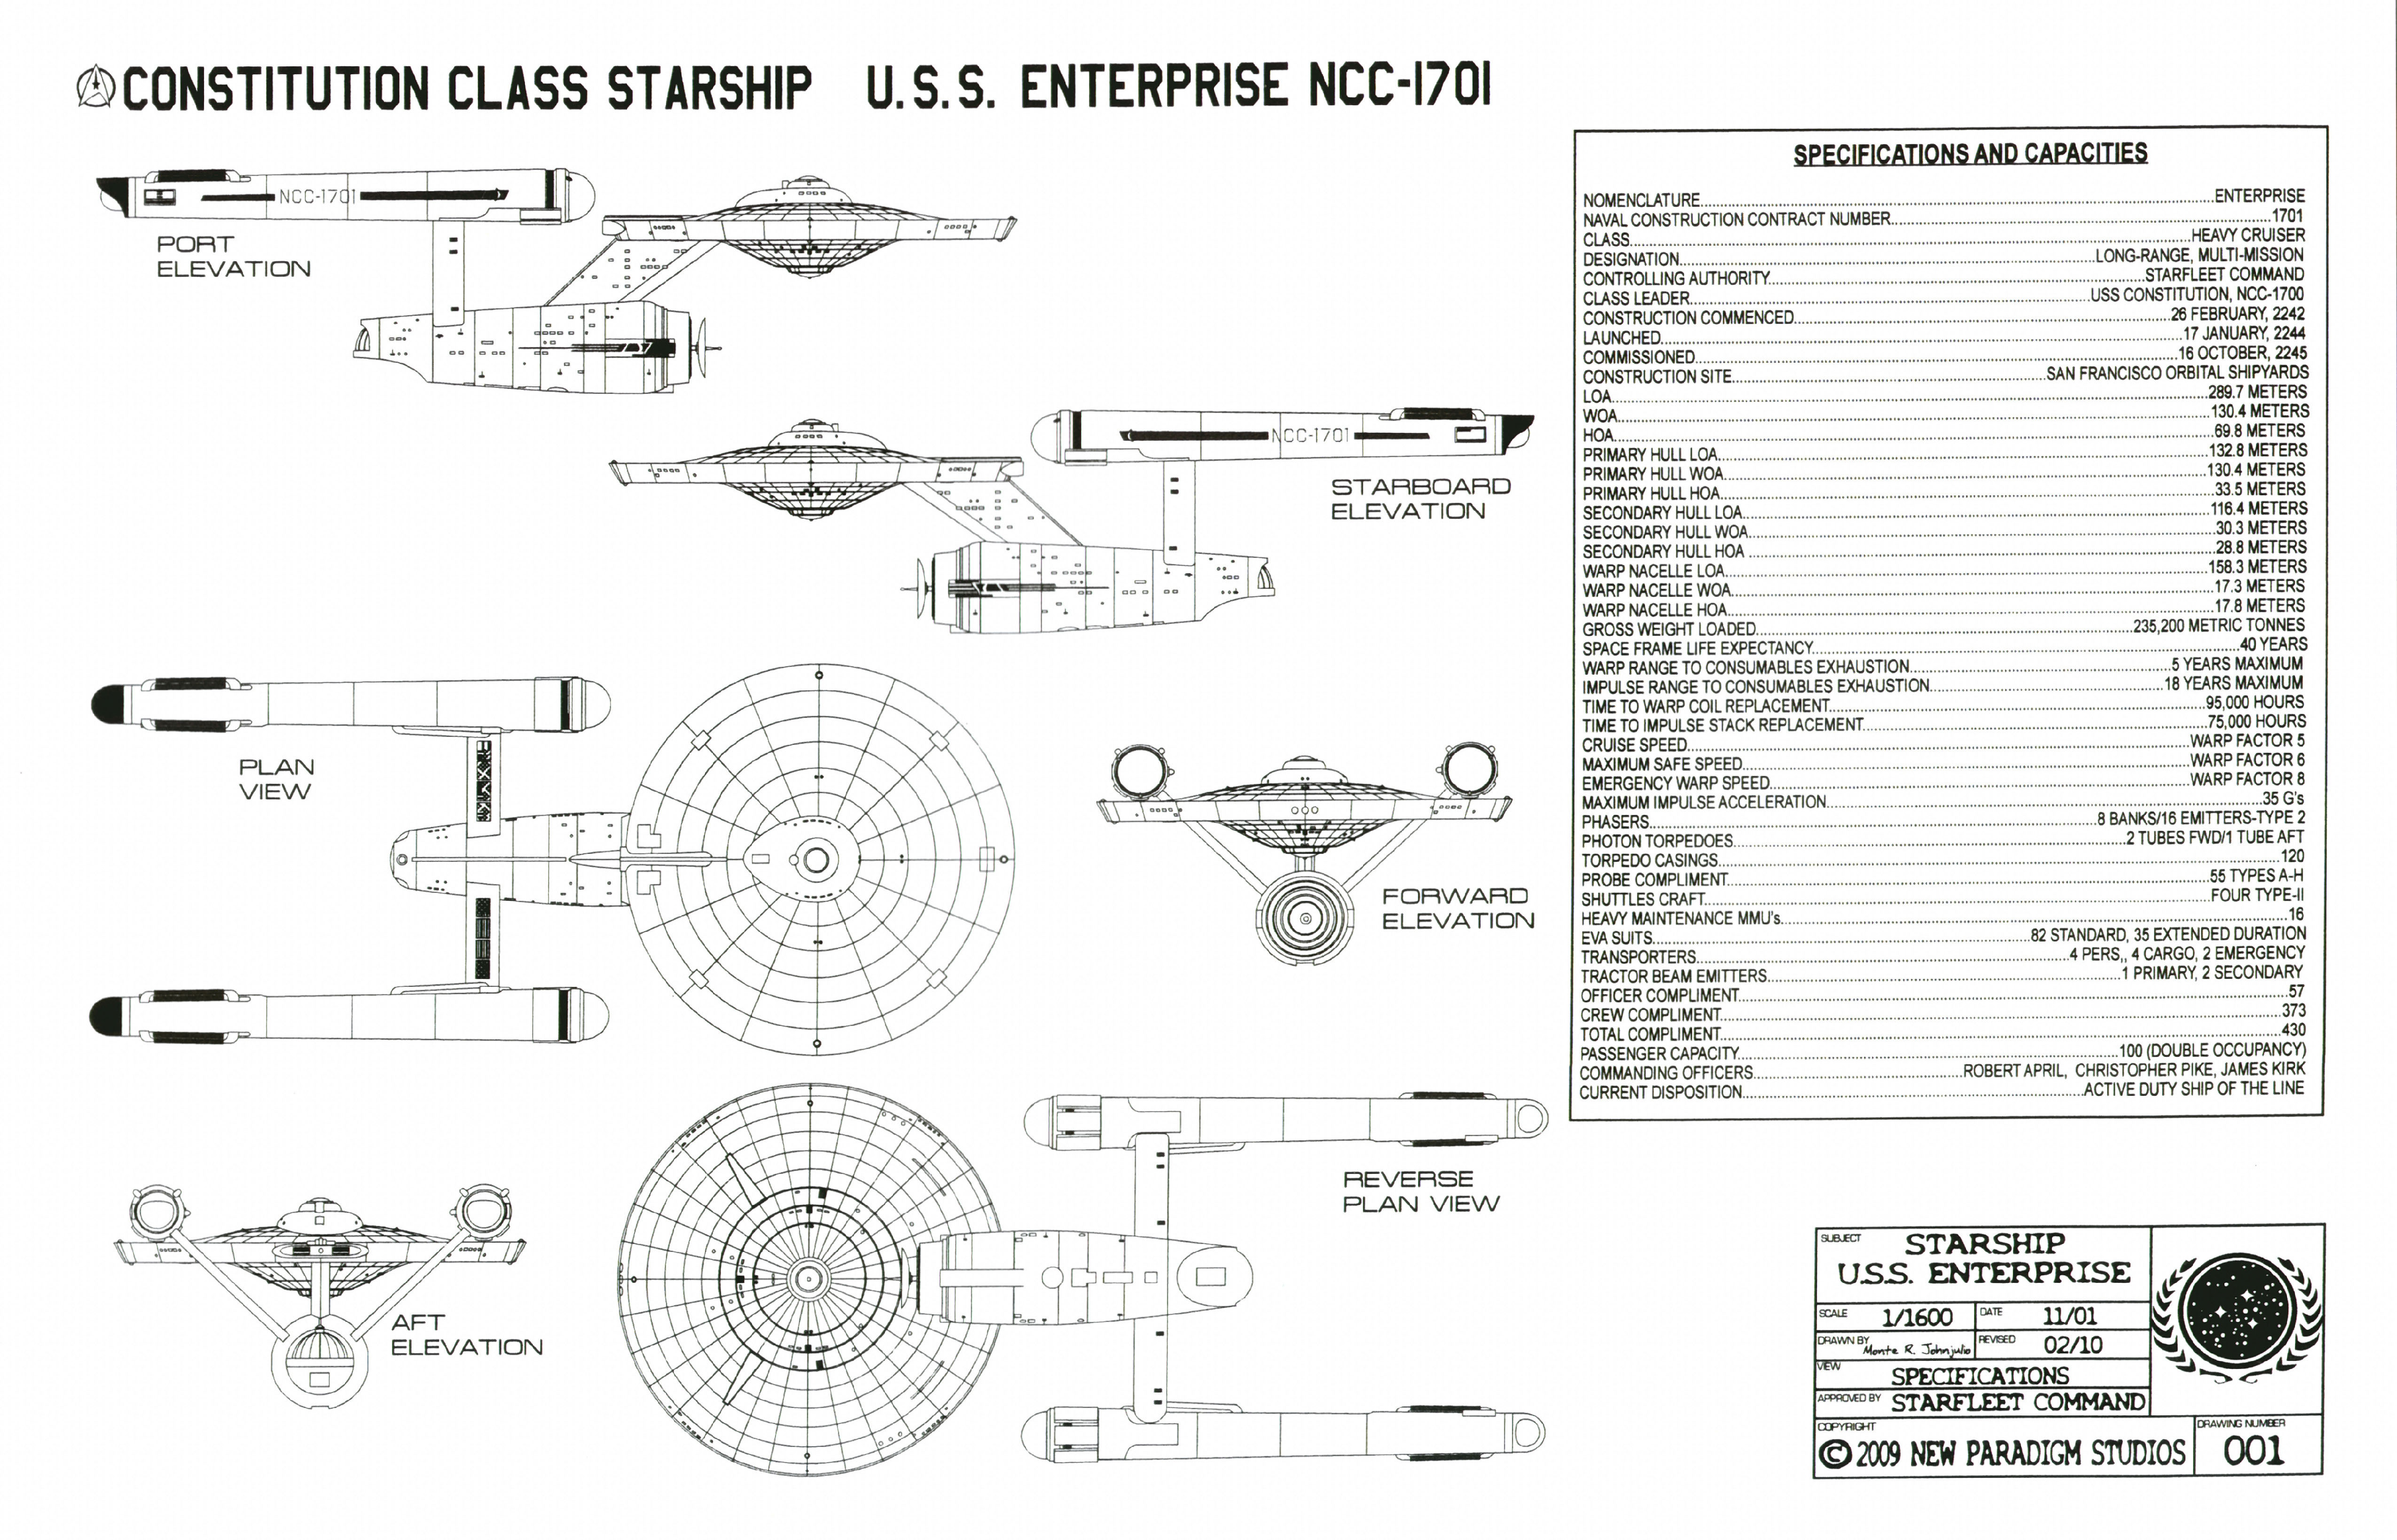 aircraft carrier schematics with Constitution Class Starship on Takr 300 Gallery further Russian Navy Bigger Than Uss besides Schematic Details 95 Porte Avions Charles De Gaulle V2 1 together with If Future Fighter Carrier Jets Have True VTOL Capability Would That Mean That Carriers Built After The Ford Wont Need A Runway Or Catapult Launch together with Uss Enterprise Cvn 65.